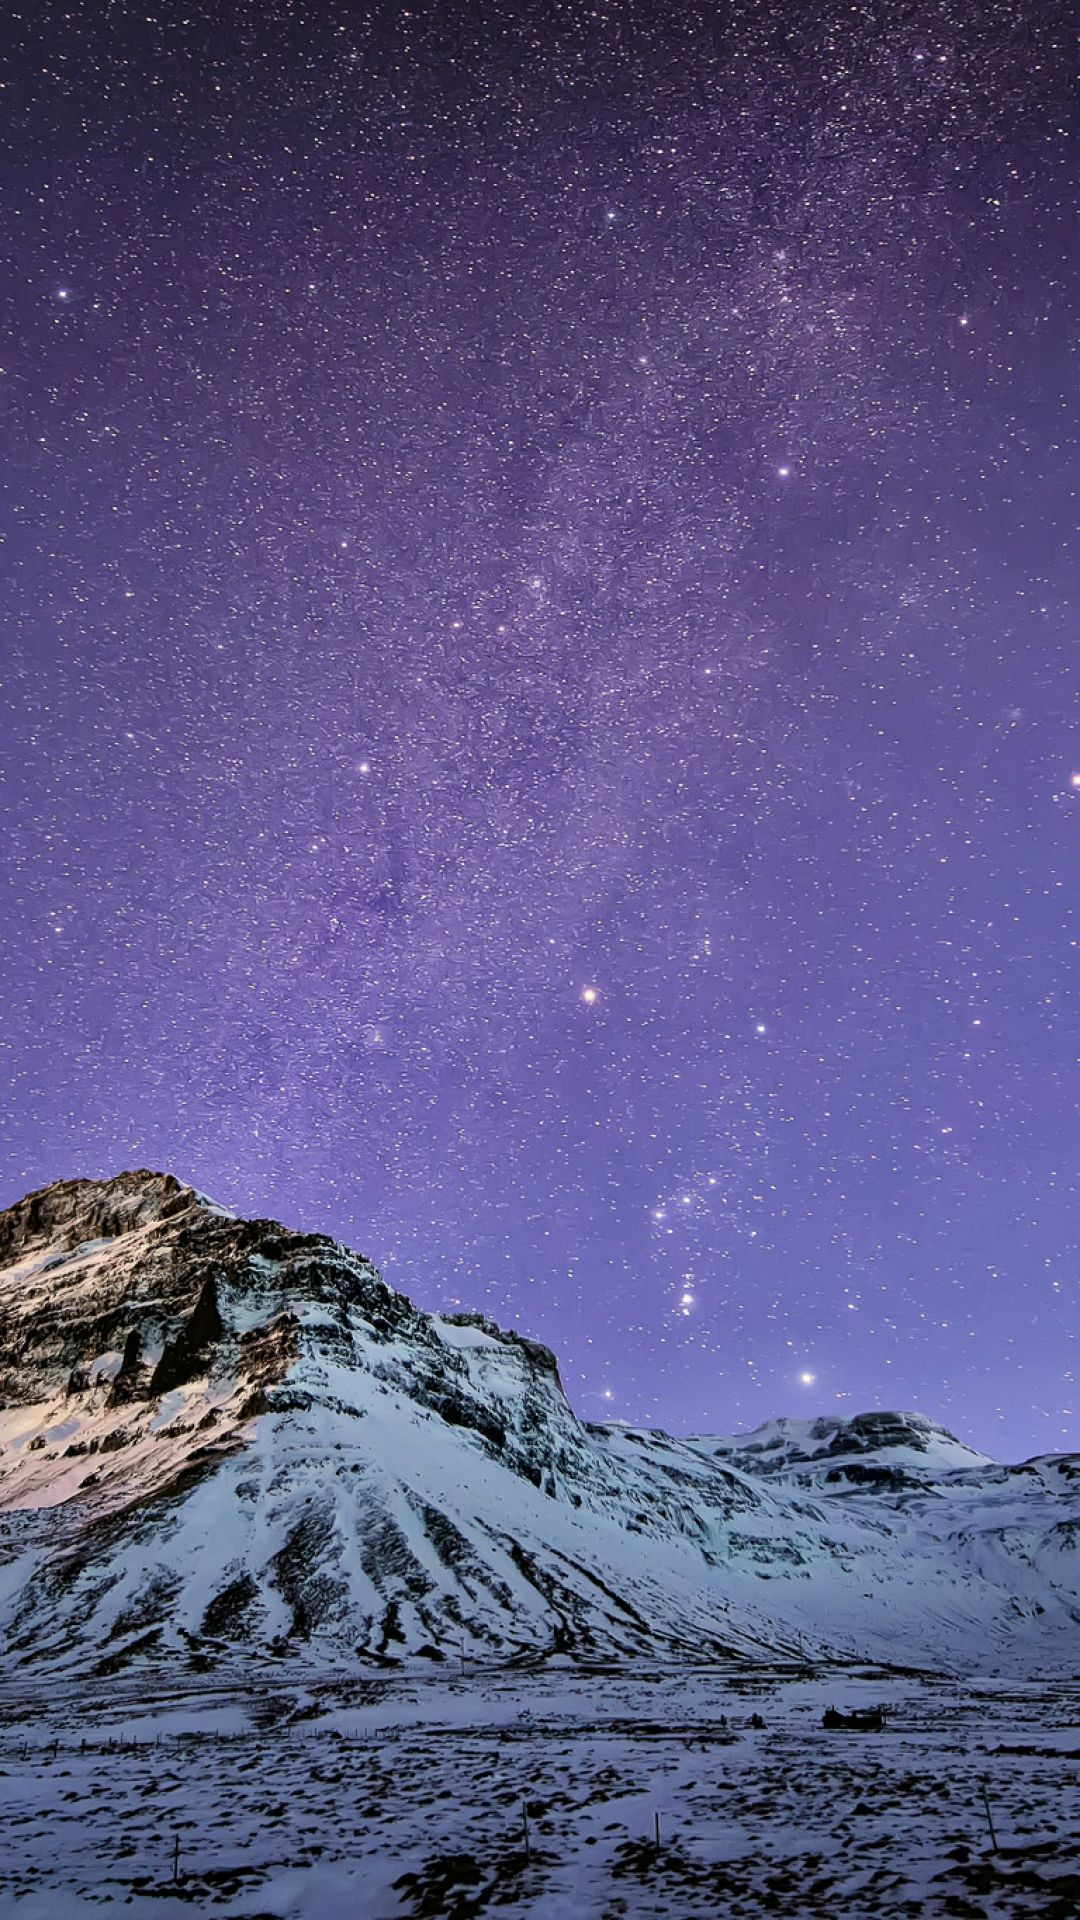 Snow Mountain Stars Skyscape Iphone 7 Wallpaper